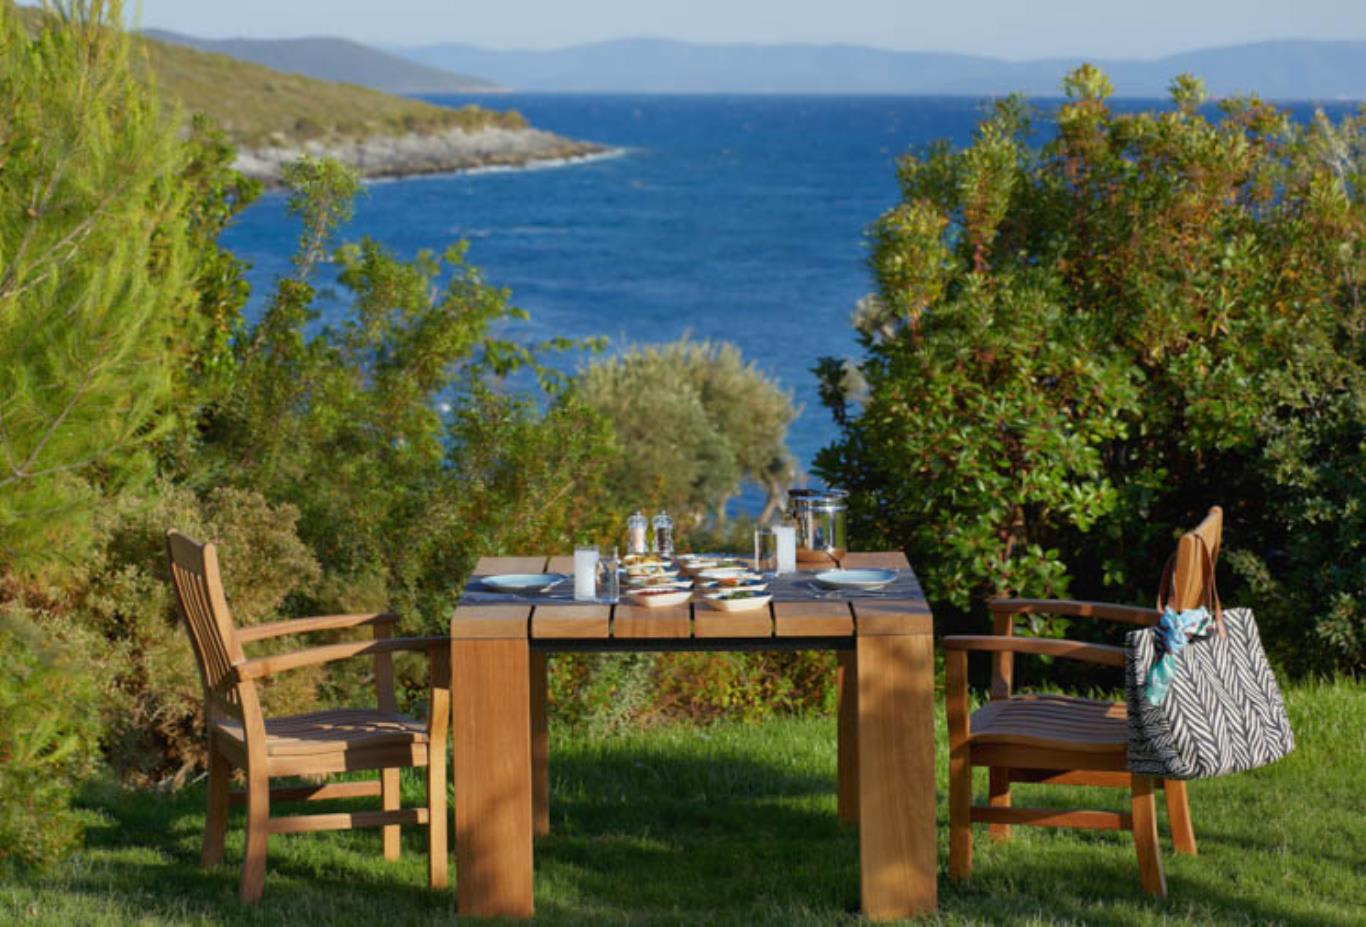 Mezze by the Sea and views